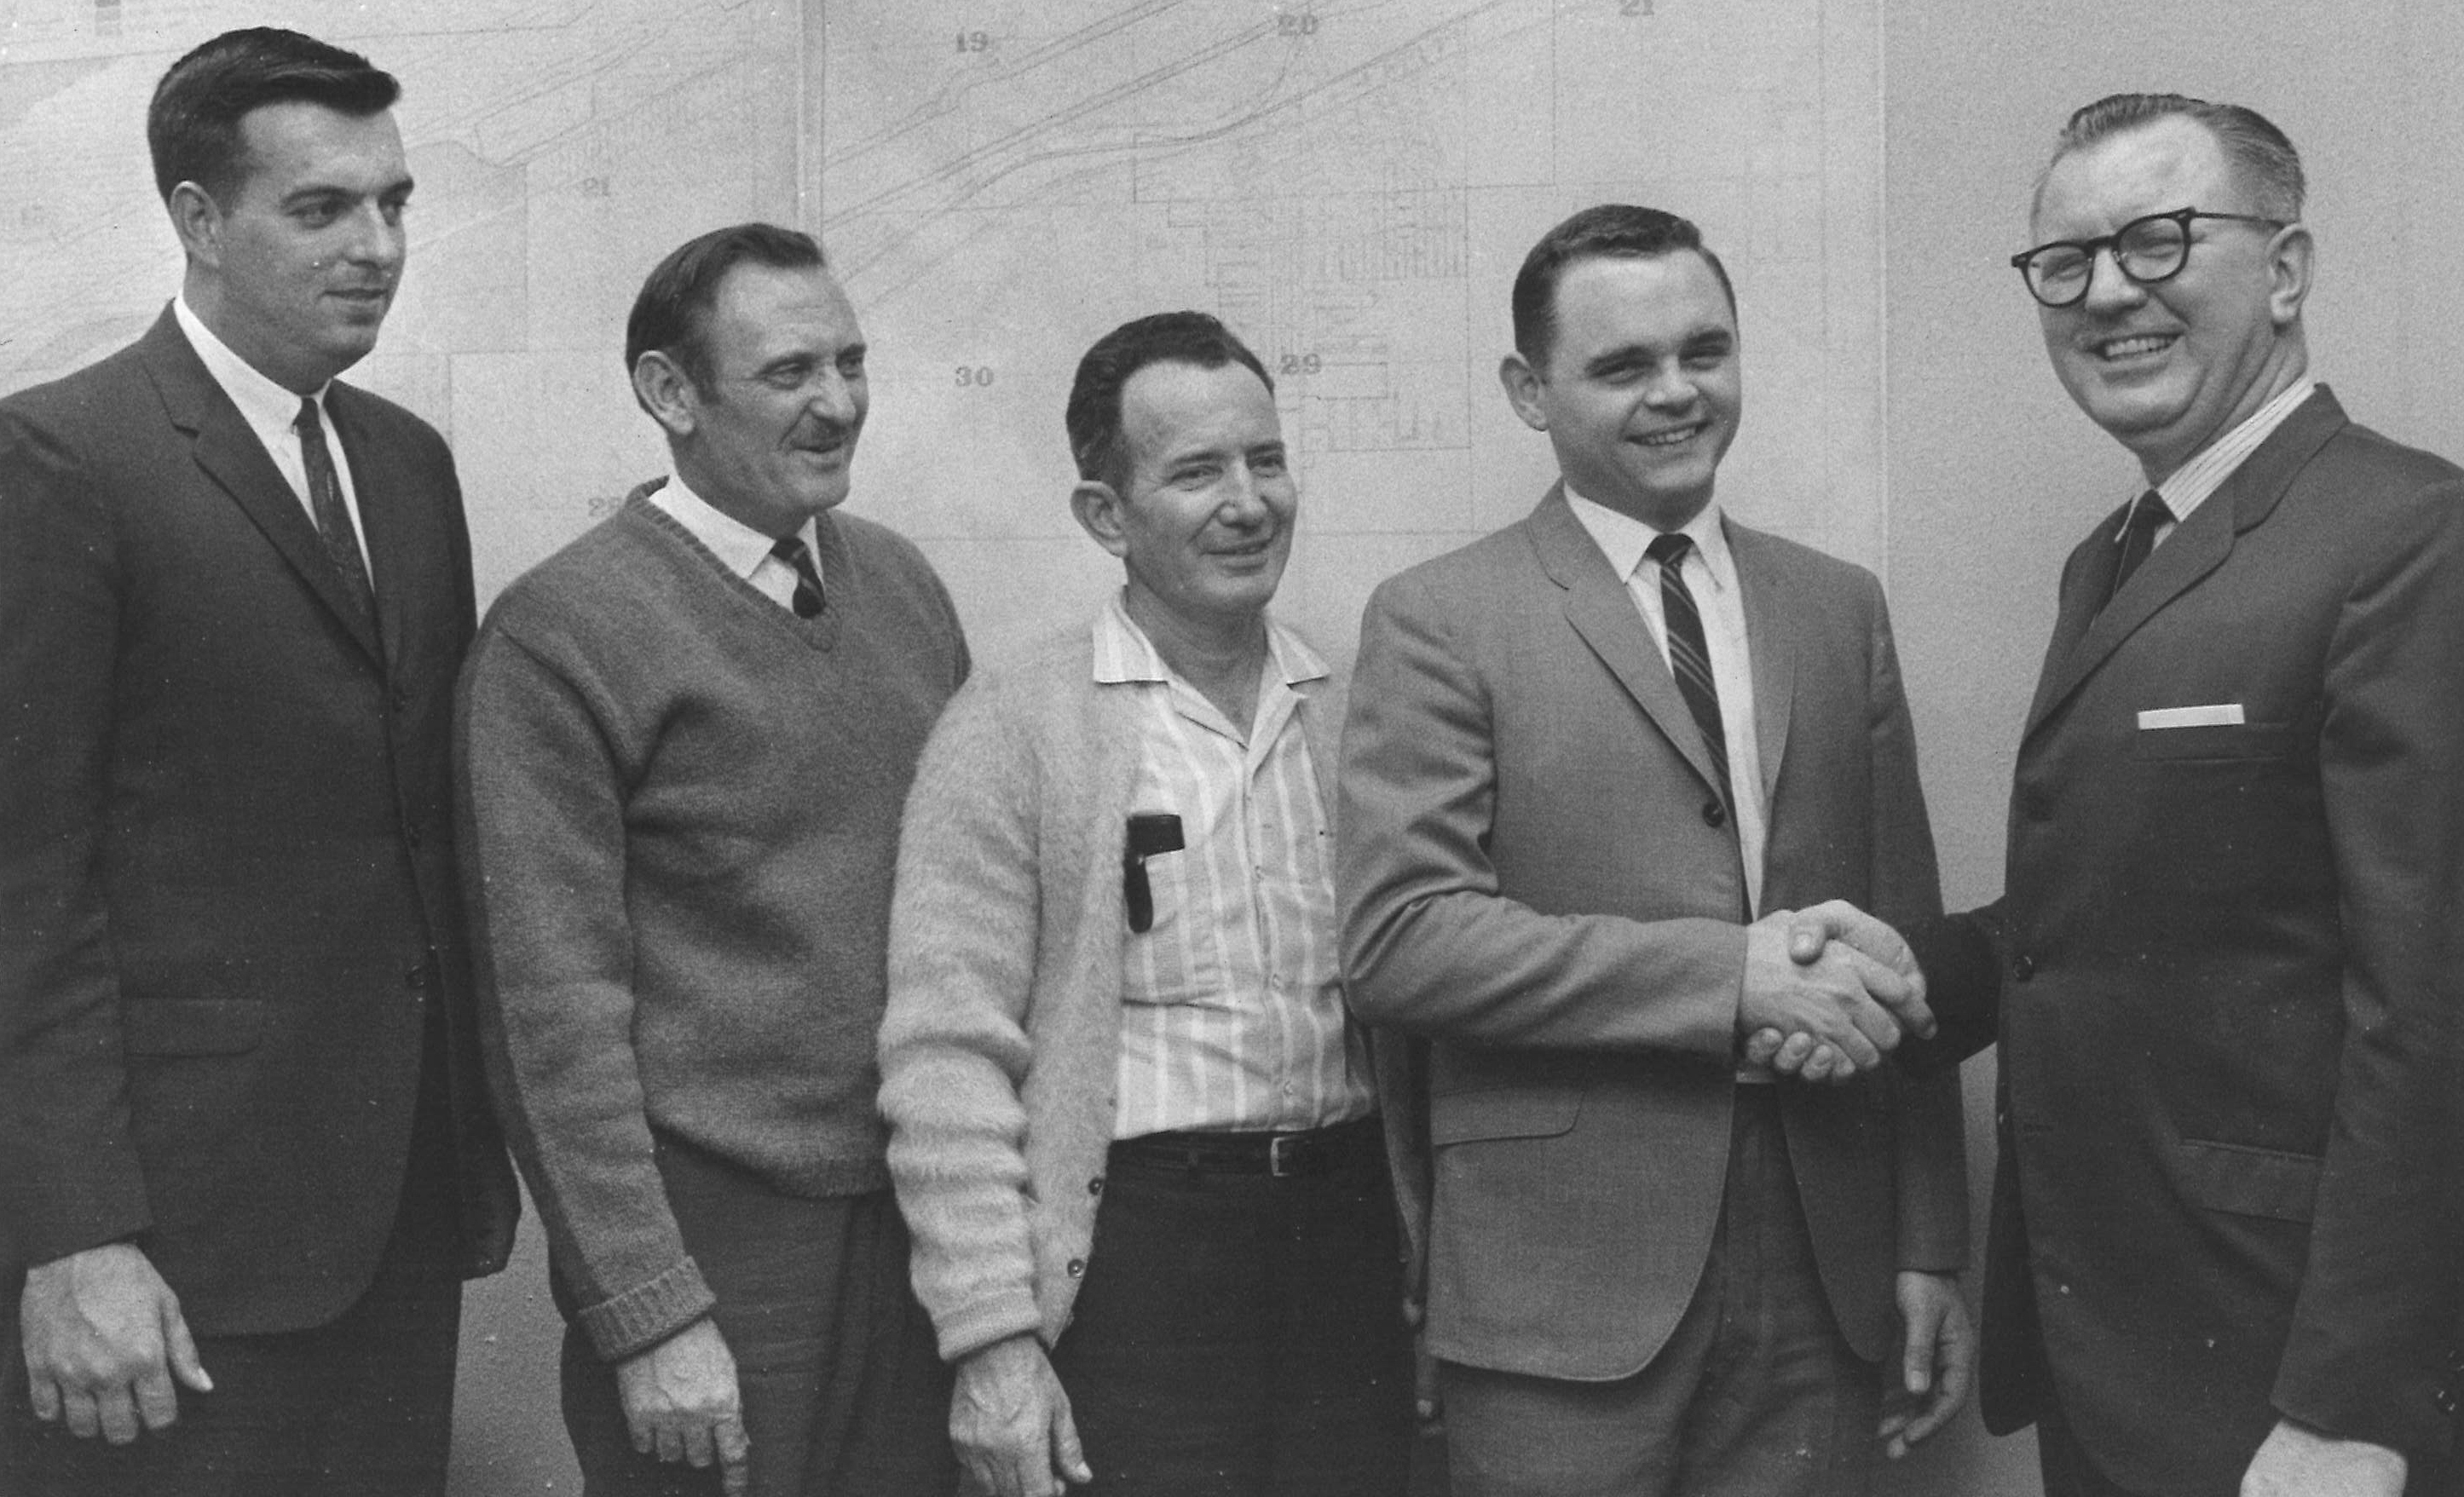 The original Lemont Park District Board with Founder Lewis Ruppert in April 1966. From left to right, Ronald Weber, Norbert Kluga, Rudy Gotlund, Phil Smith and Lewis Ruppert (Norbert Lesnieski not pictured)